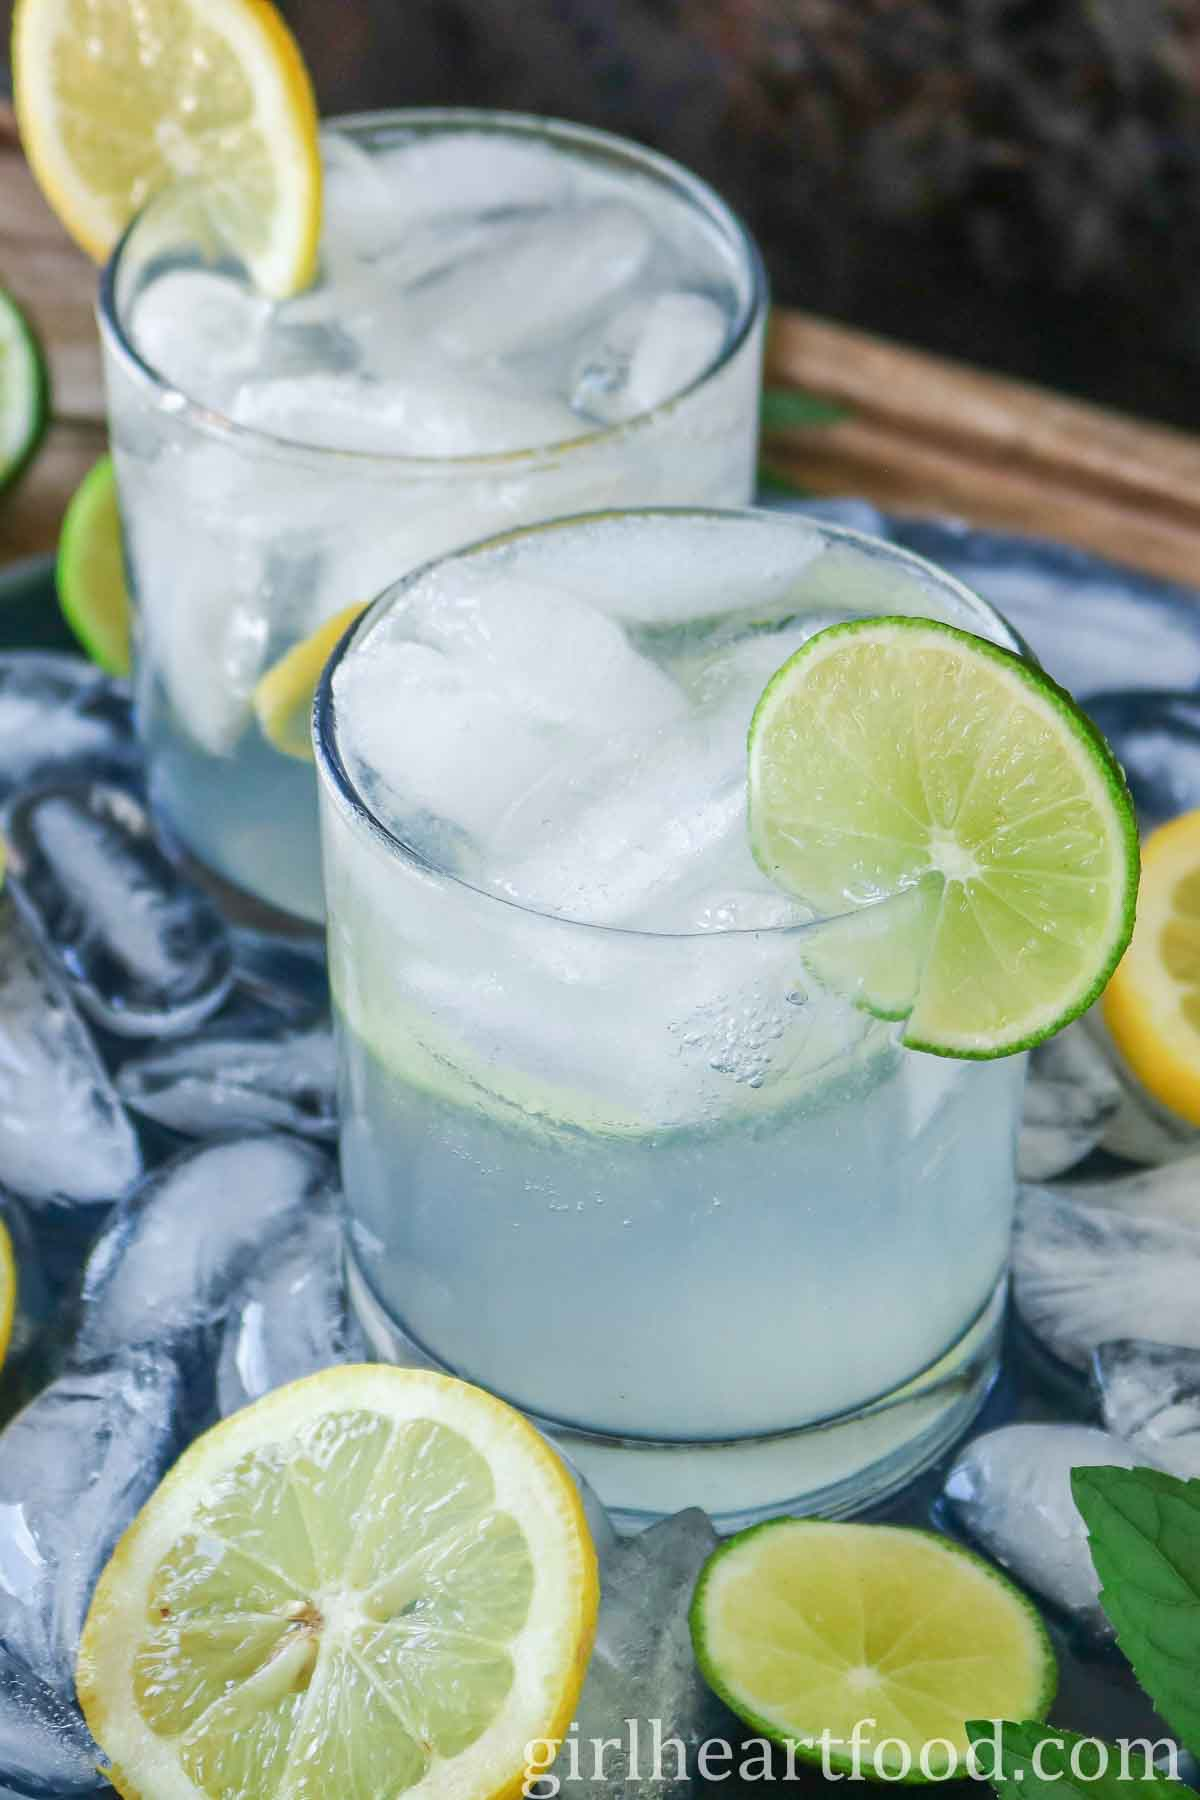 Vodka soda garnished with a lime slice.